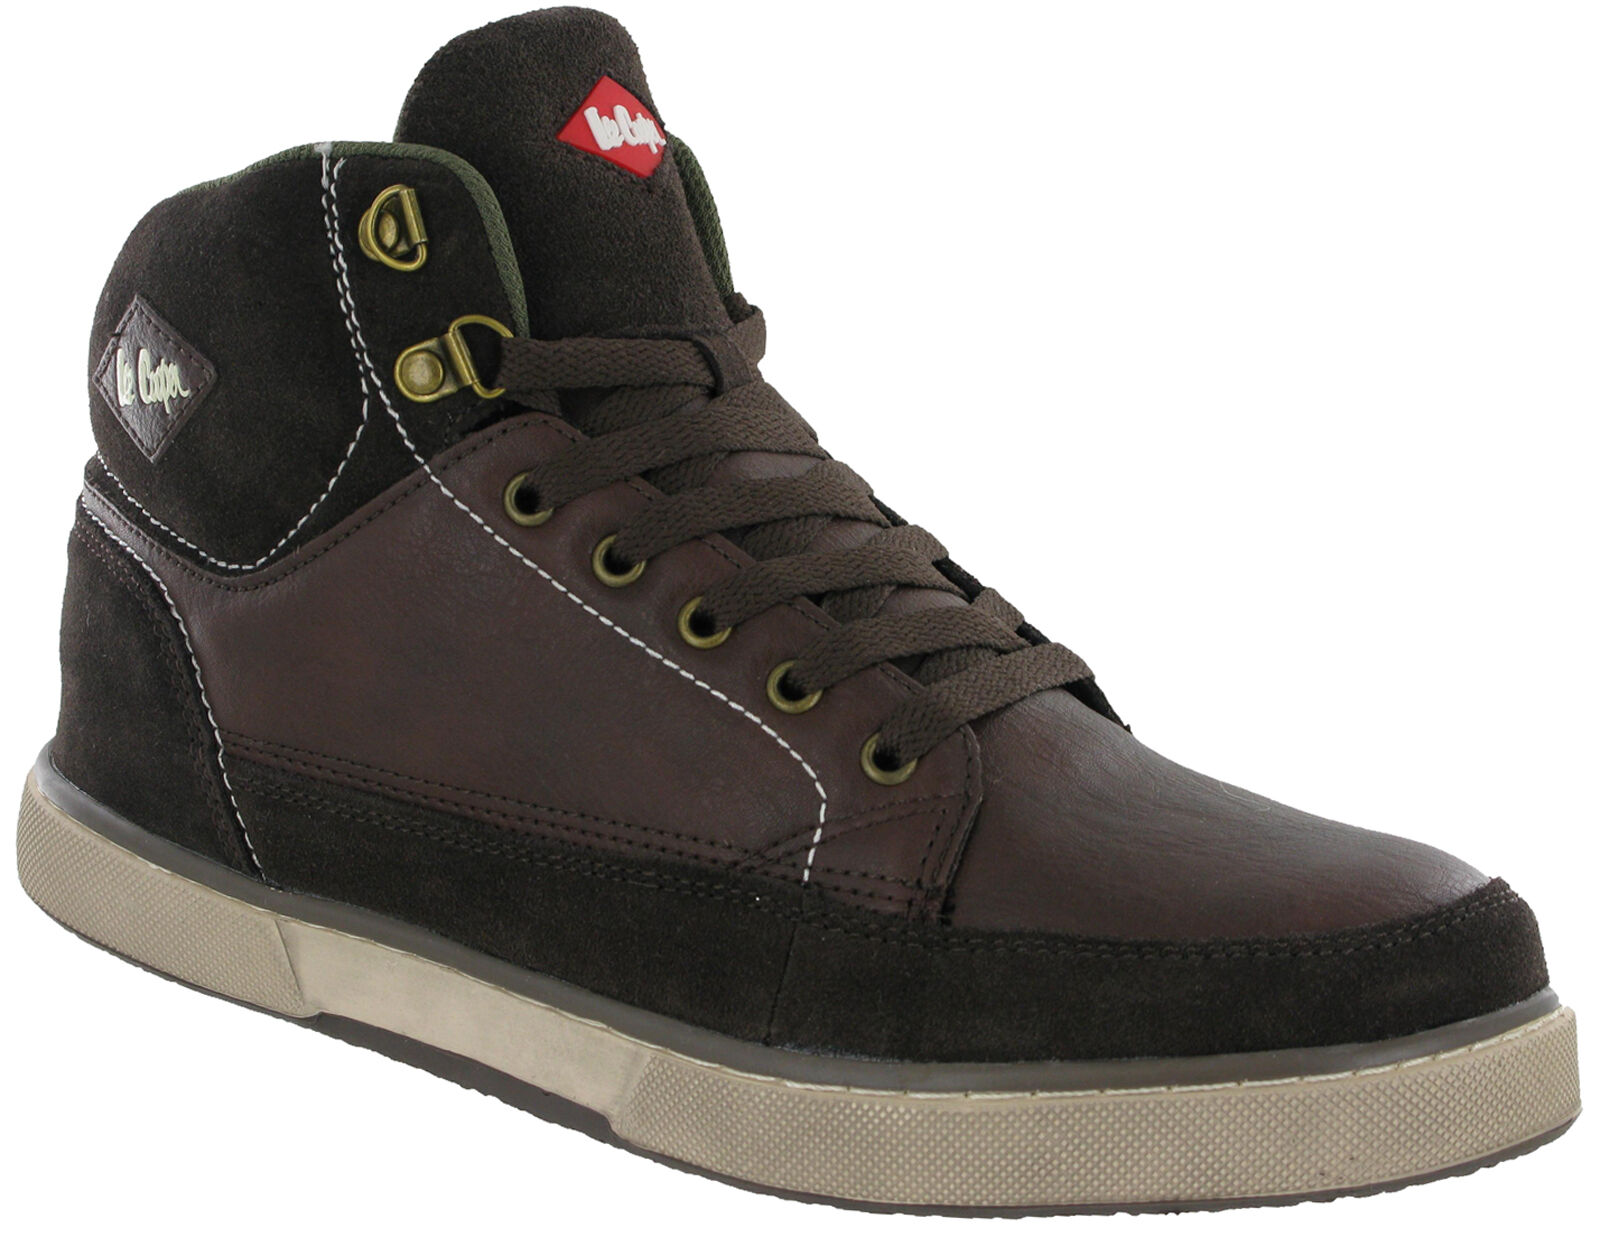 6cbaa768bd733 Lee Cooper Safety Hi-tops Leather Boots Ankle Trainers Brown Lace Up Mens  LC-086